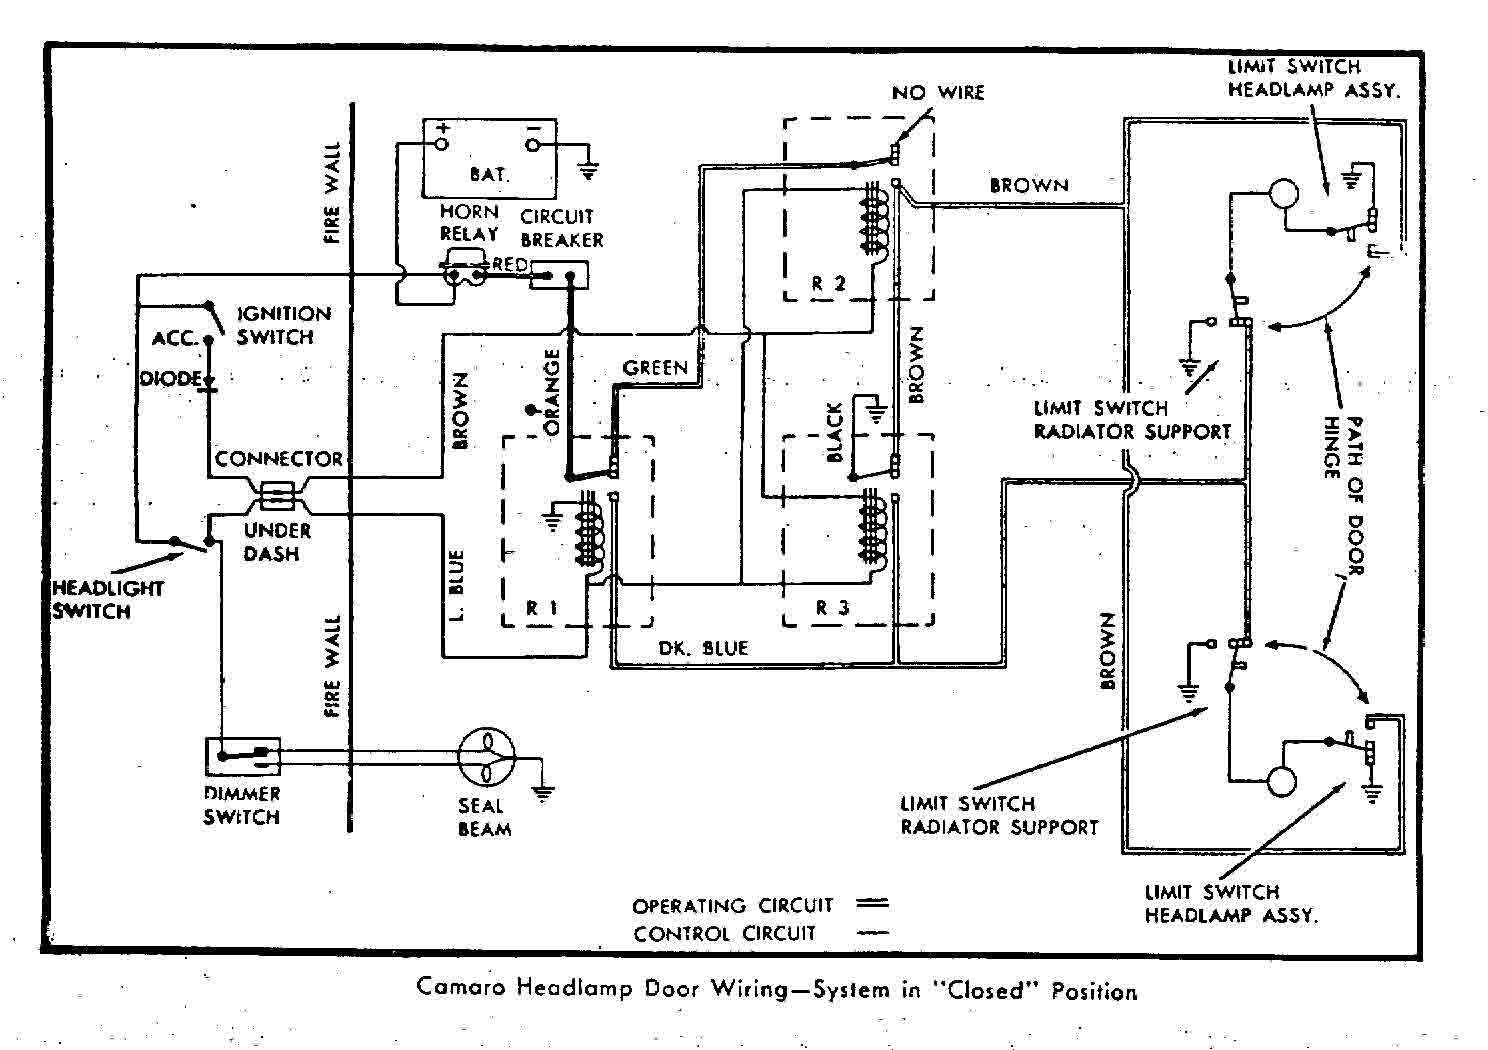 67 chevy camaro wiring diagram wiring schematic diagram rh theodocle fion  com 1969 camaro windshield wiper